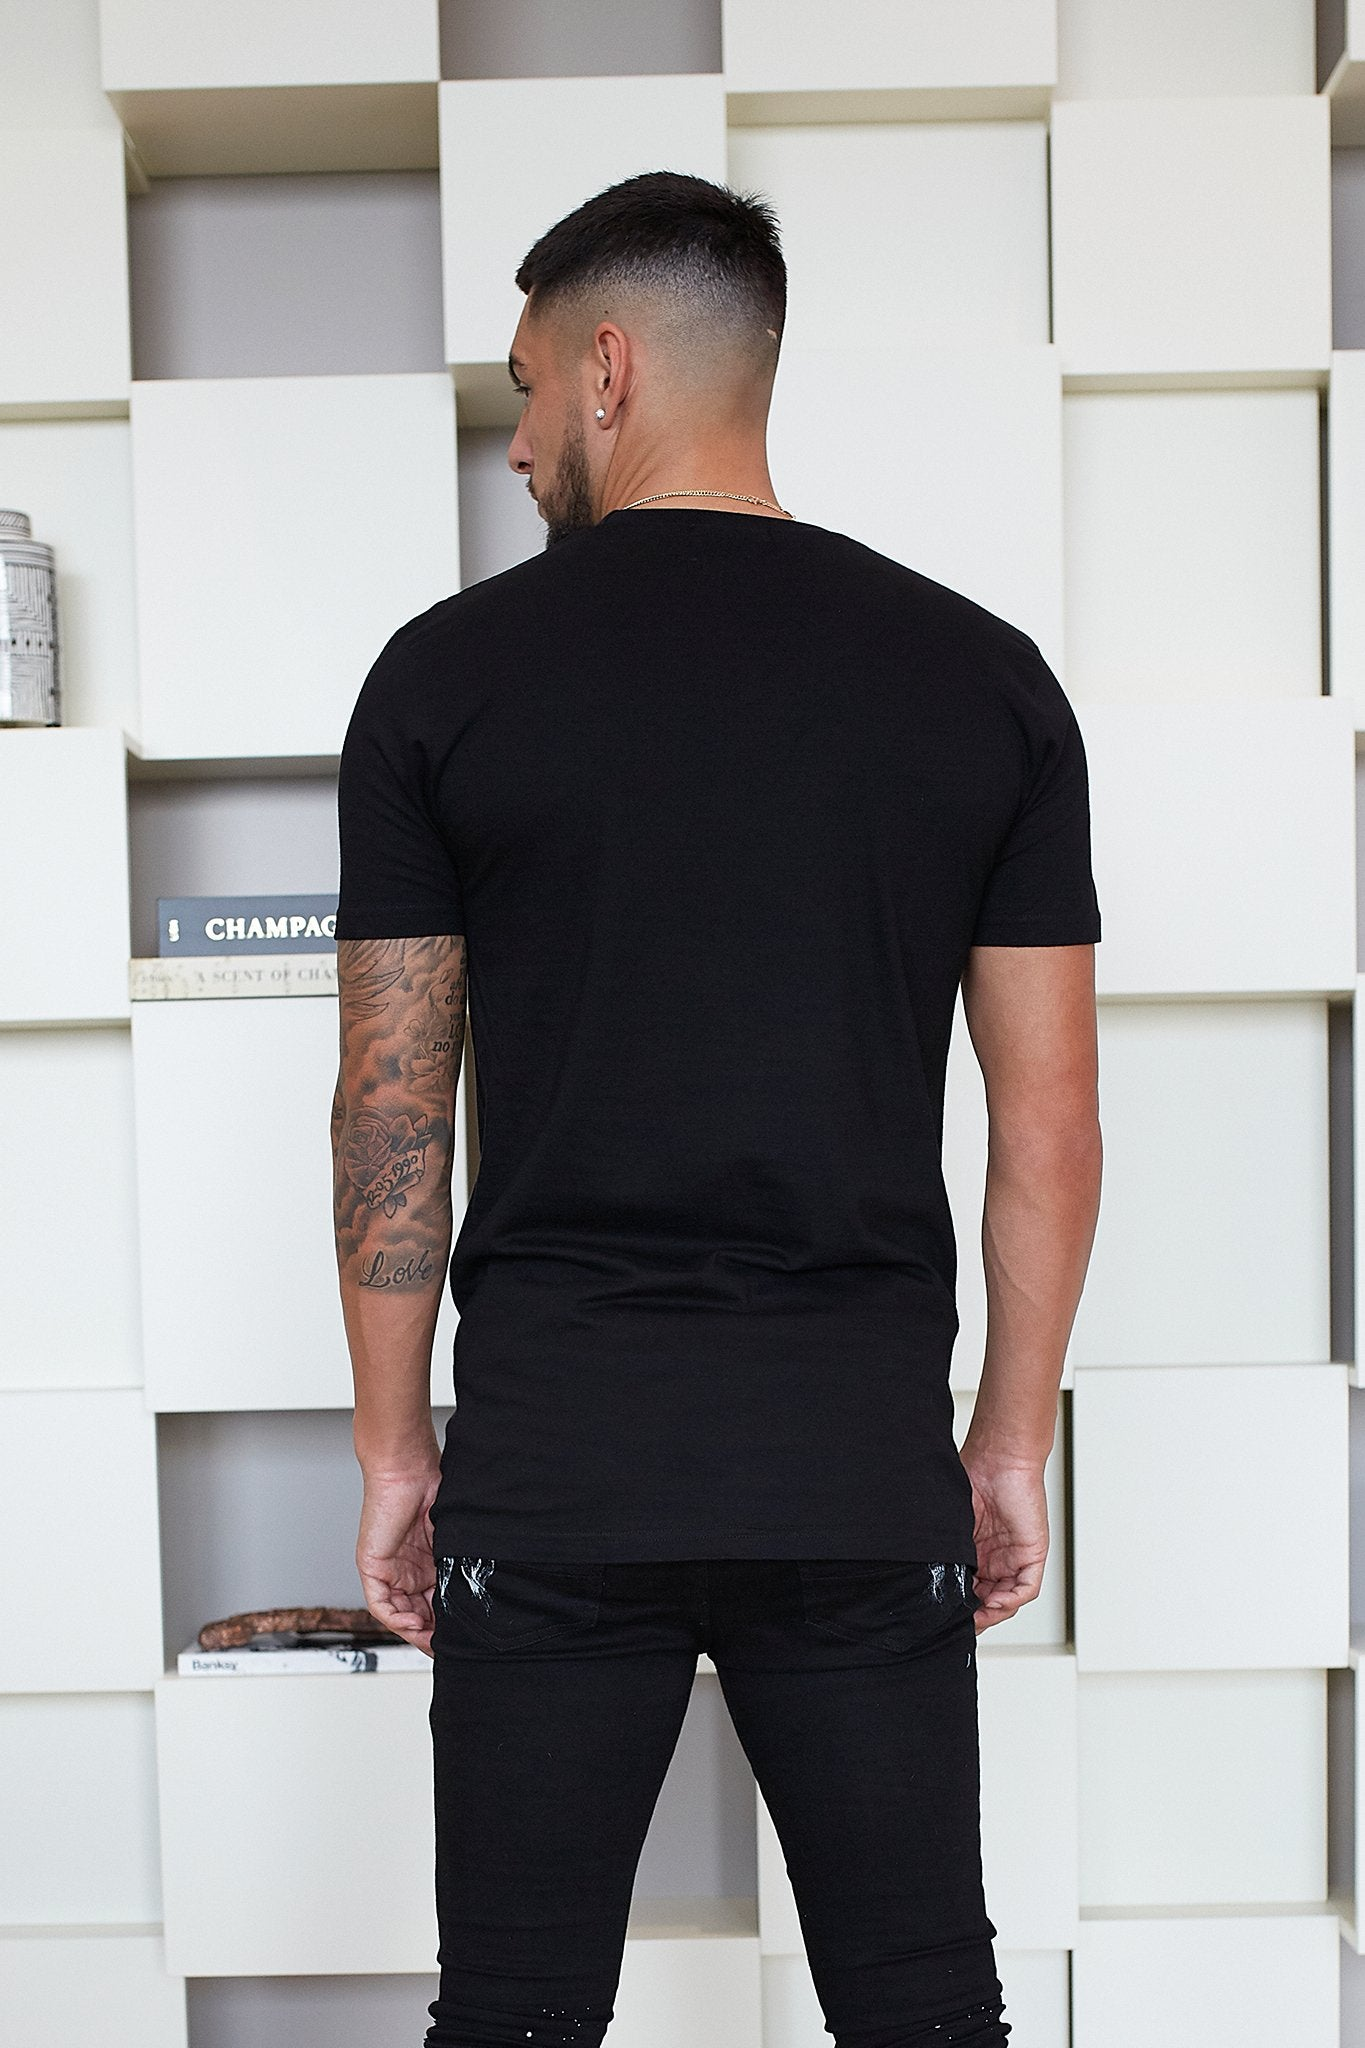 BLACK PREMIUM ESSENTIAL REGULAR FIT T-SHIRT - Illusion Attire